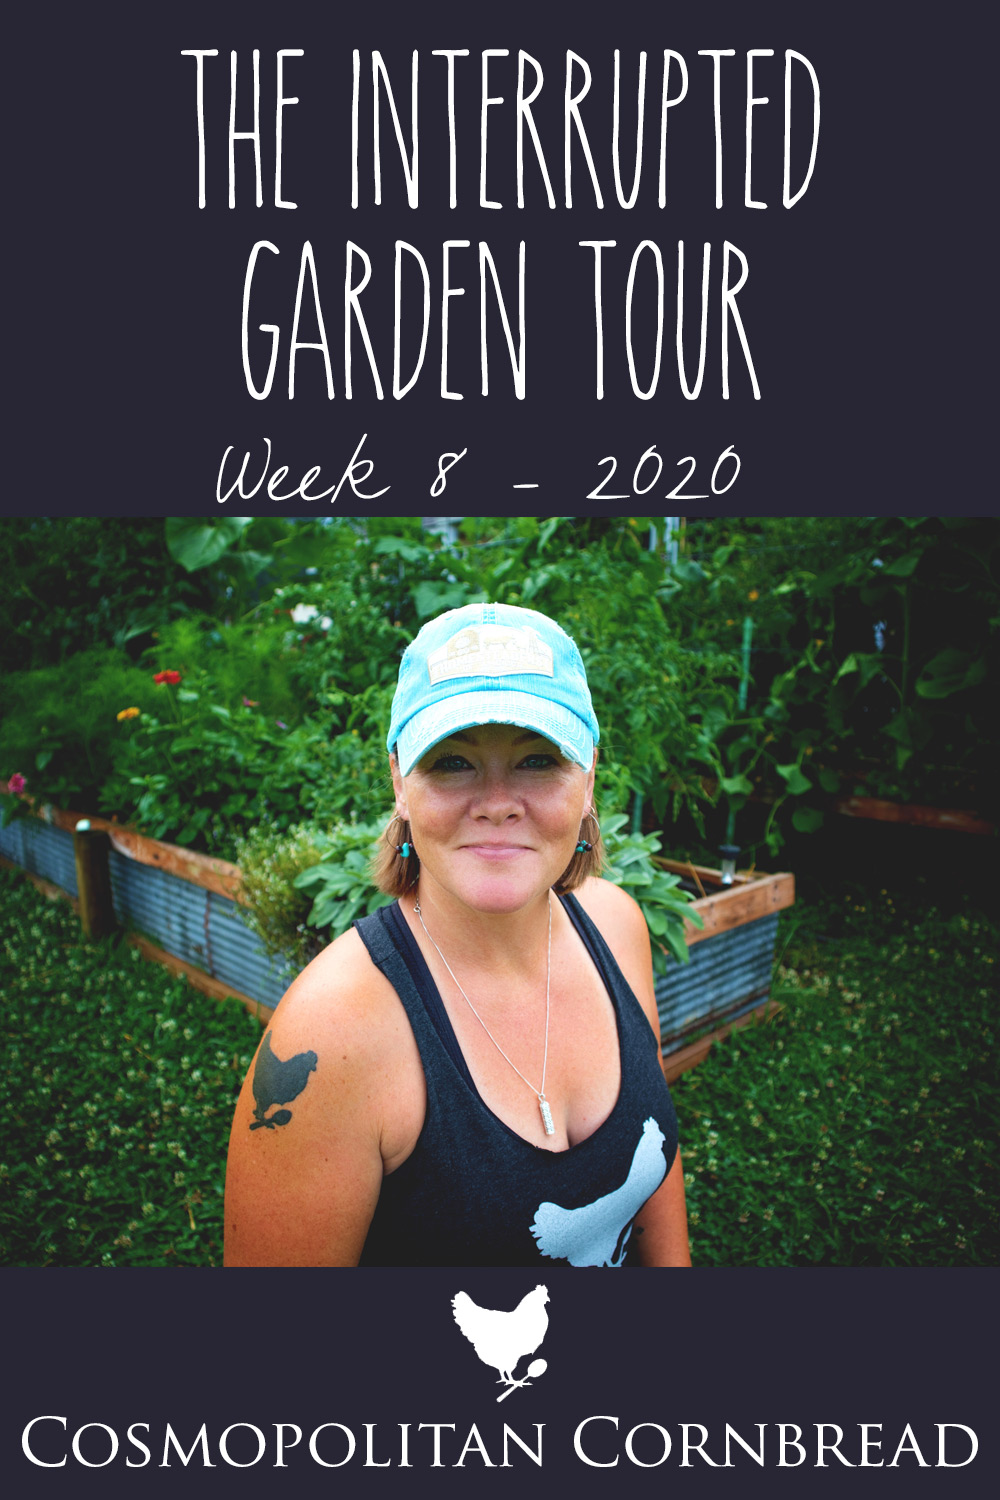 The Interrupted Garden Tour | 2020 Garden Tour Series, Week 8